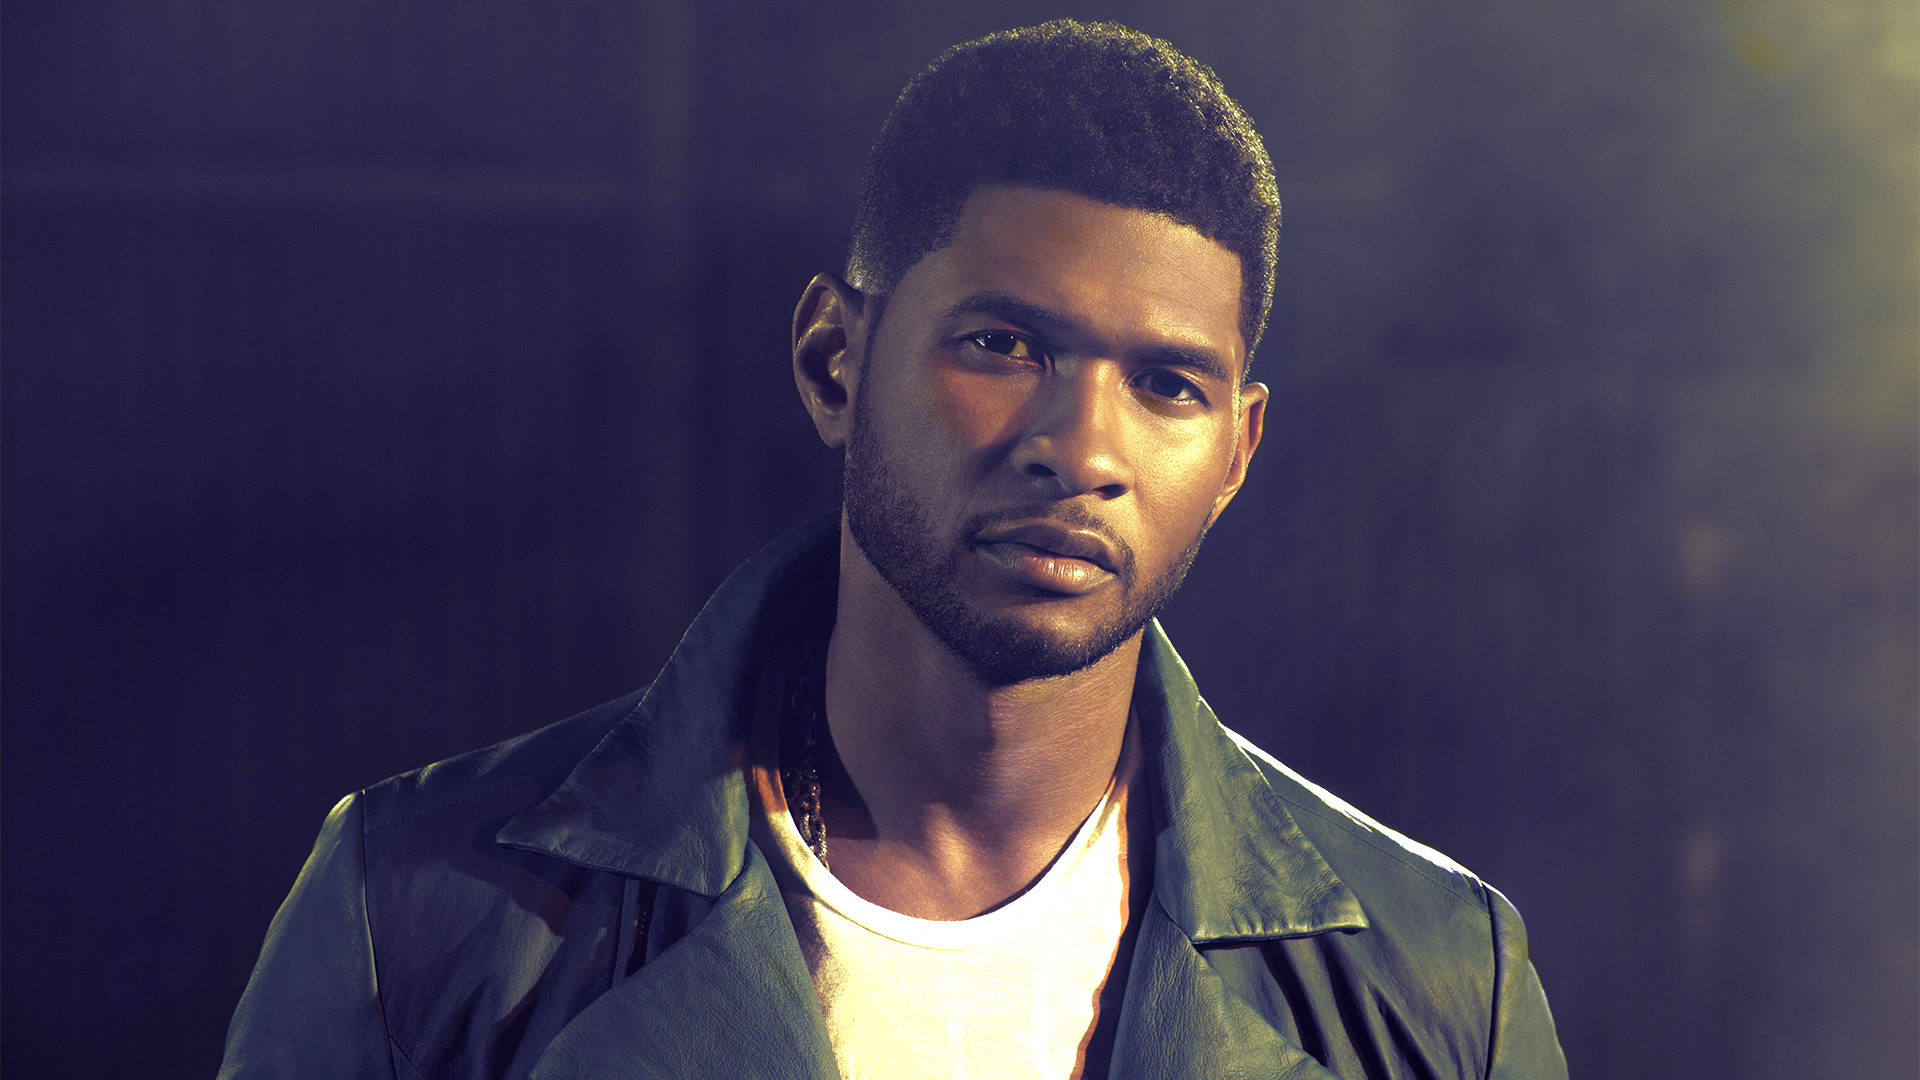 ... Usher Wallpaper; Usher Wallpaper ...